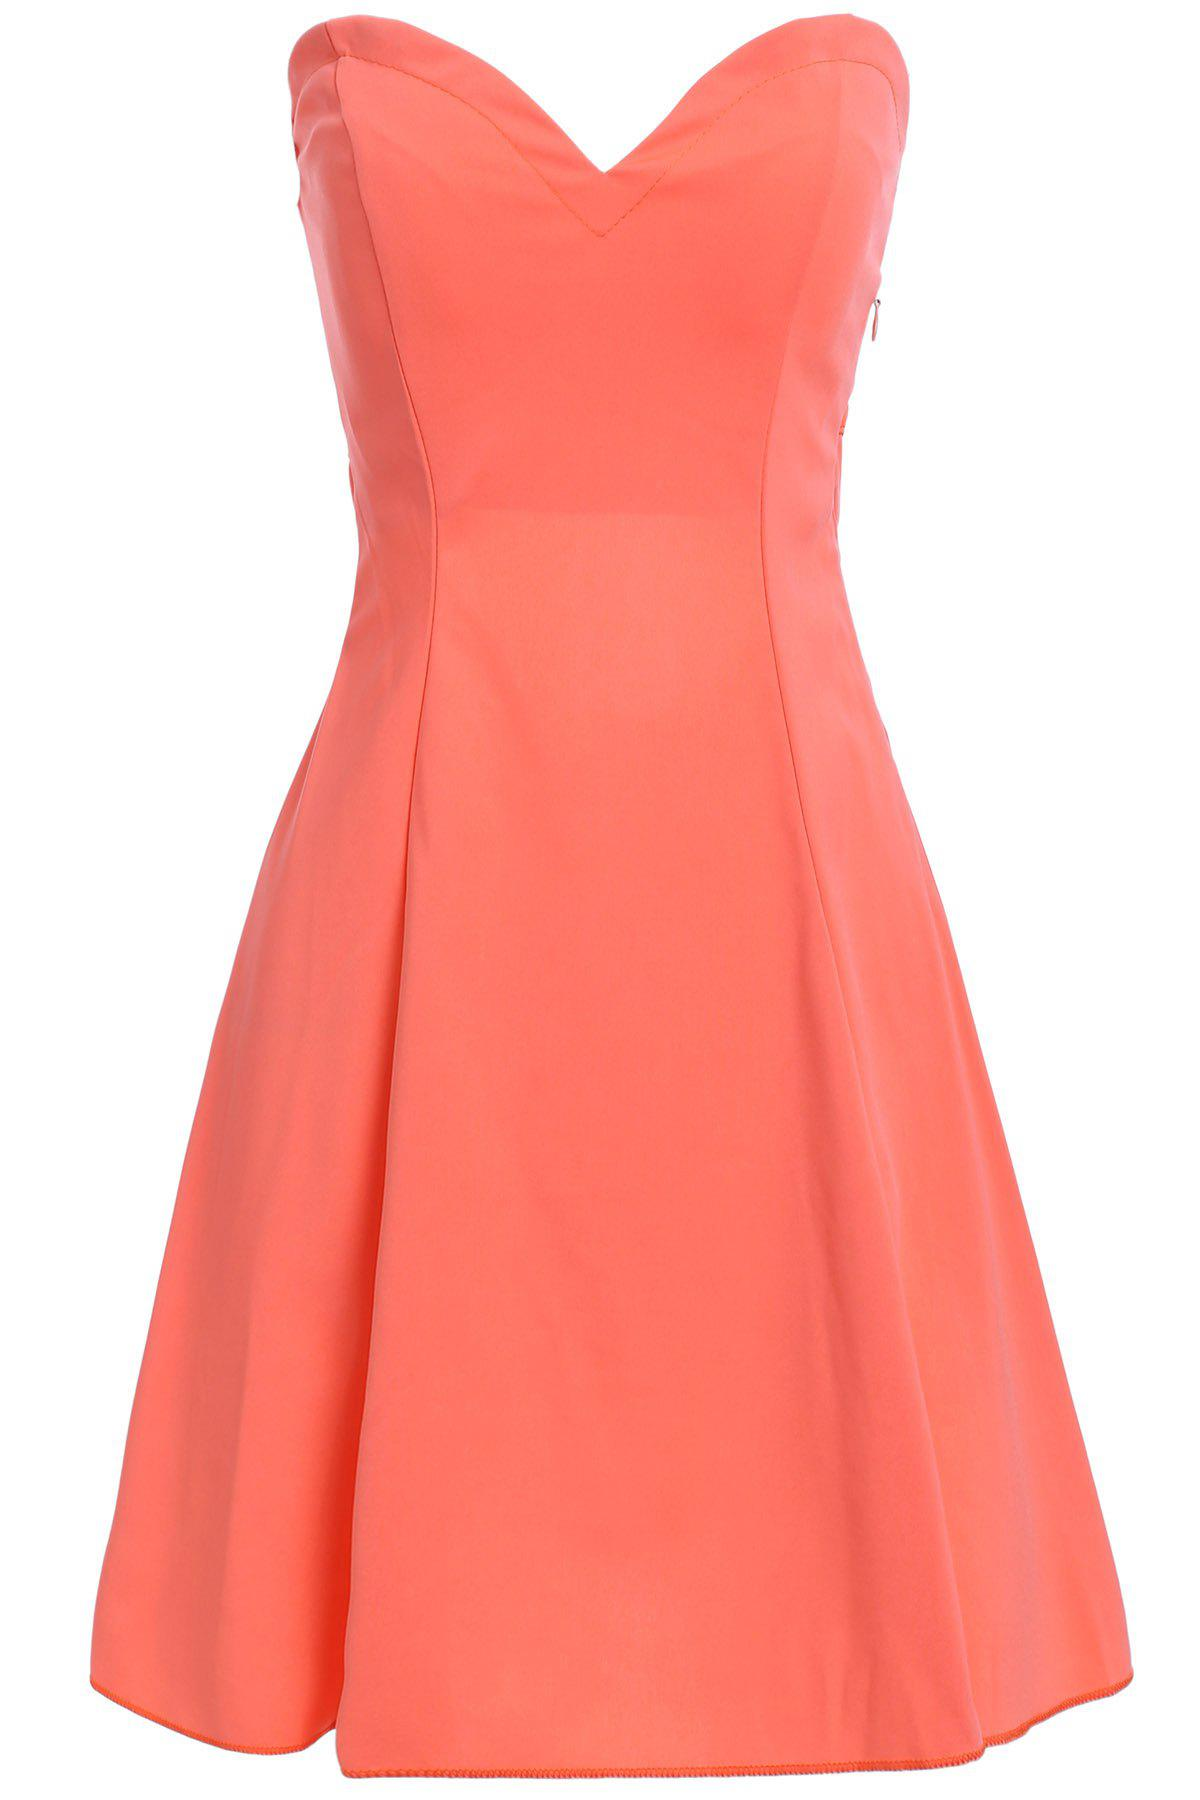 Stylish Women's Strapless Solid Color Hollow Out Club Dress - JACINTH S